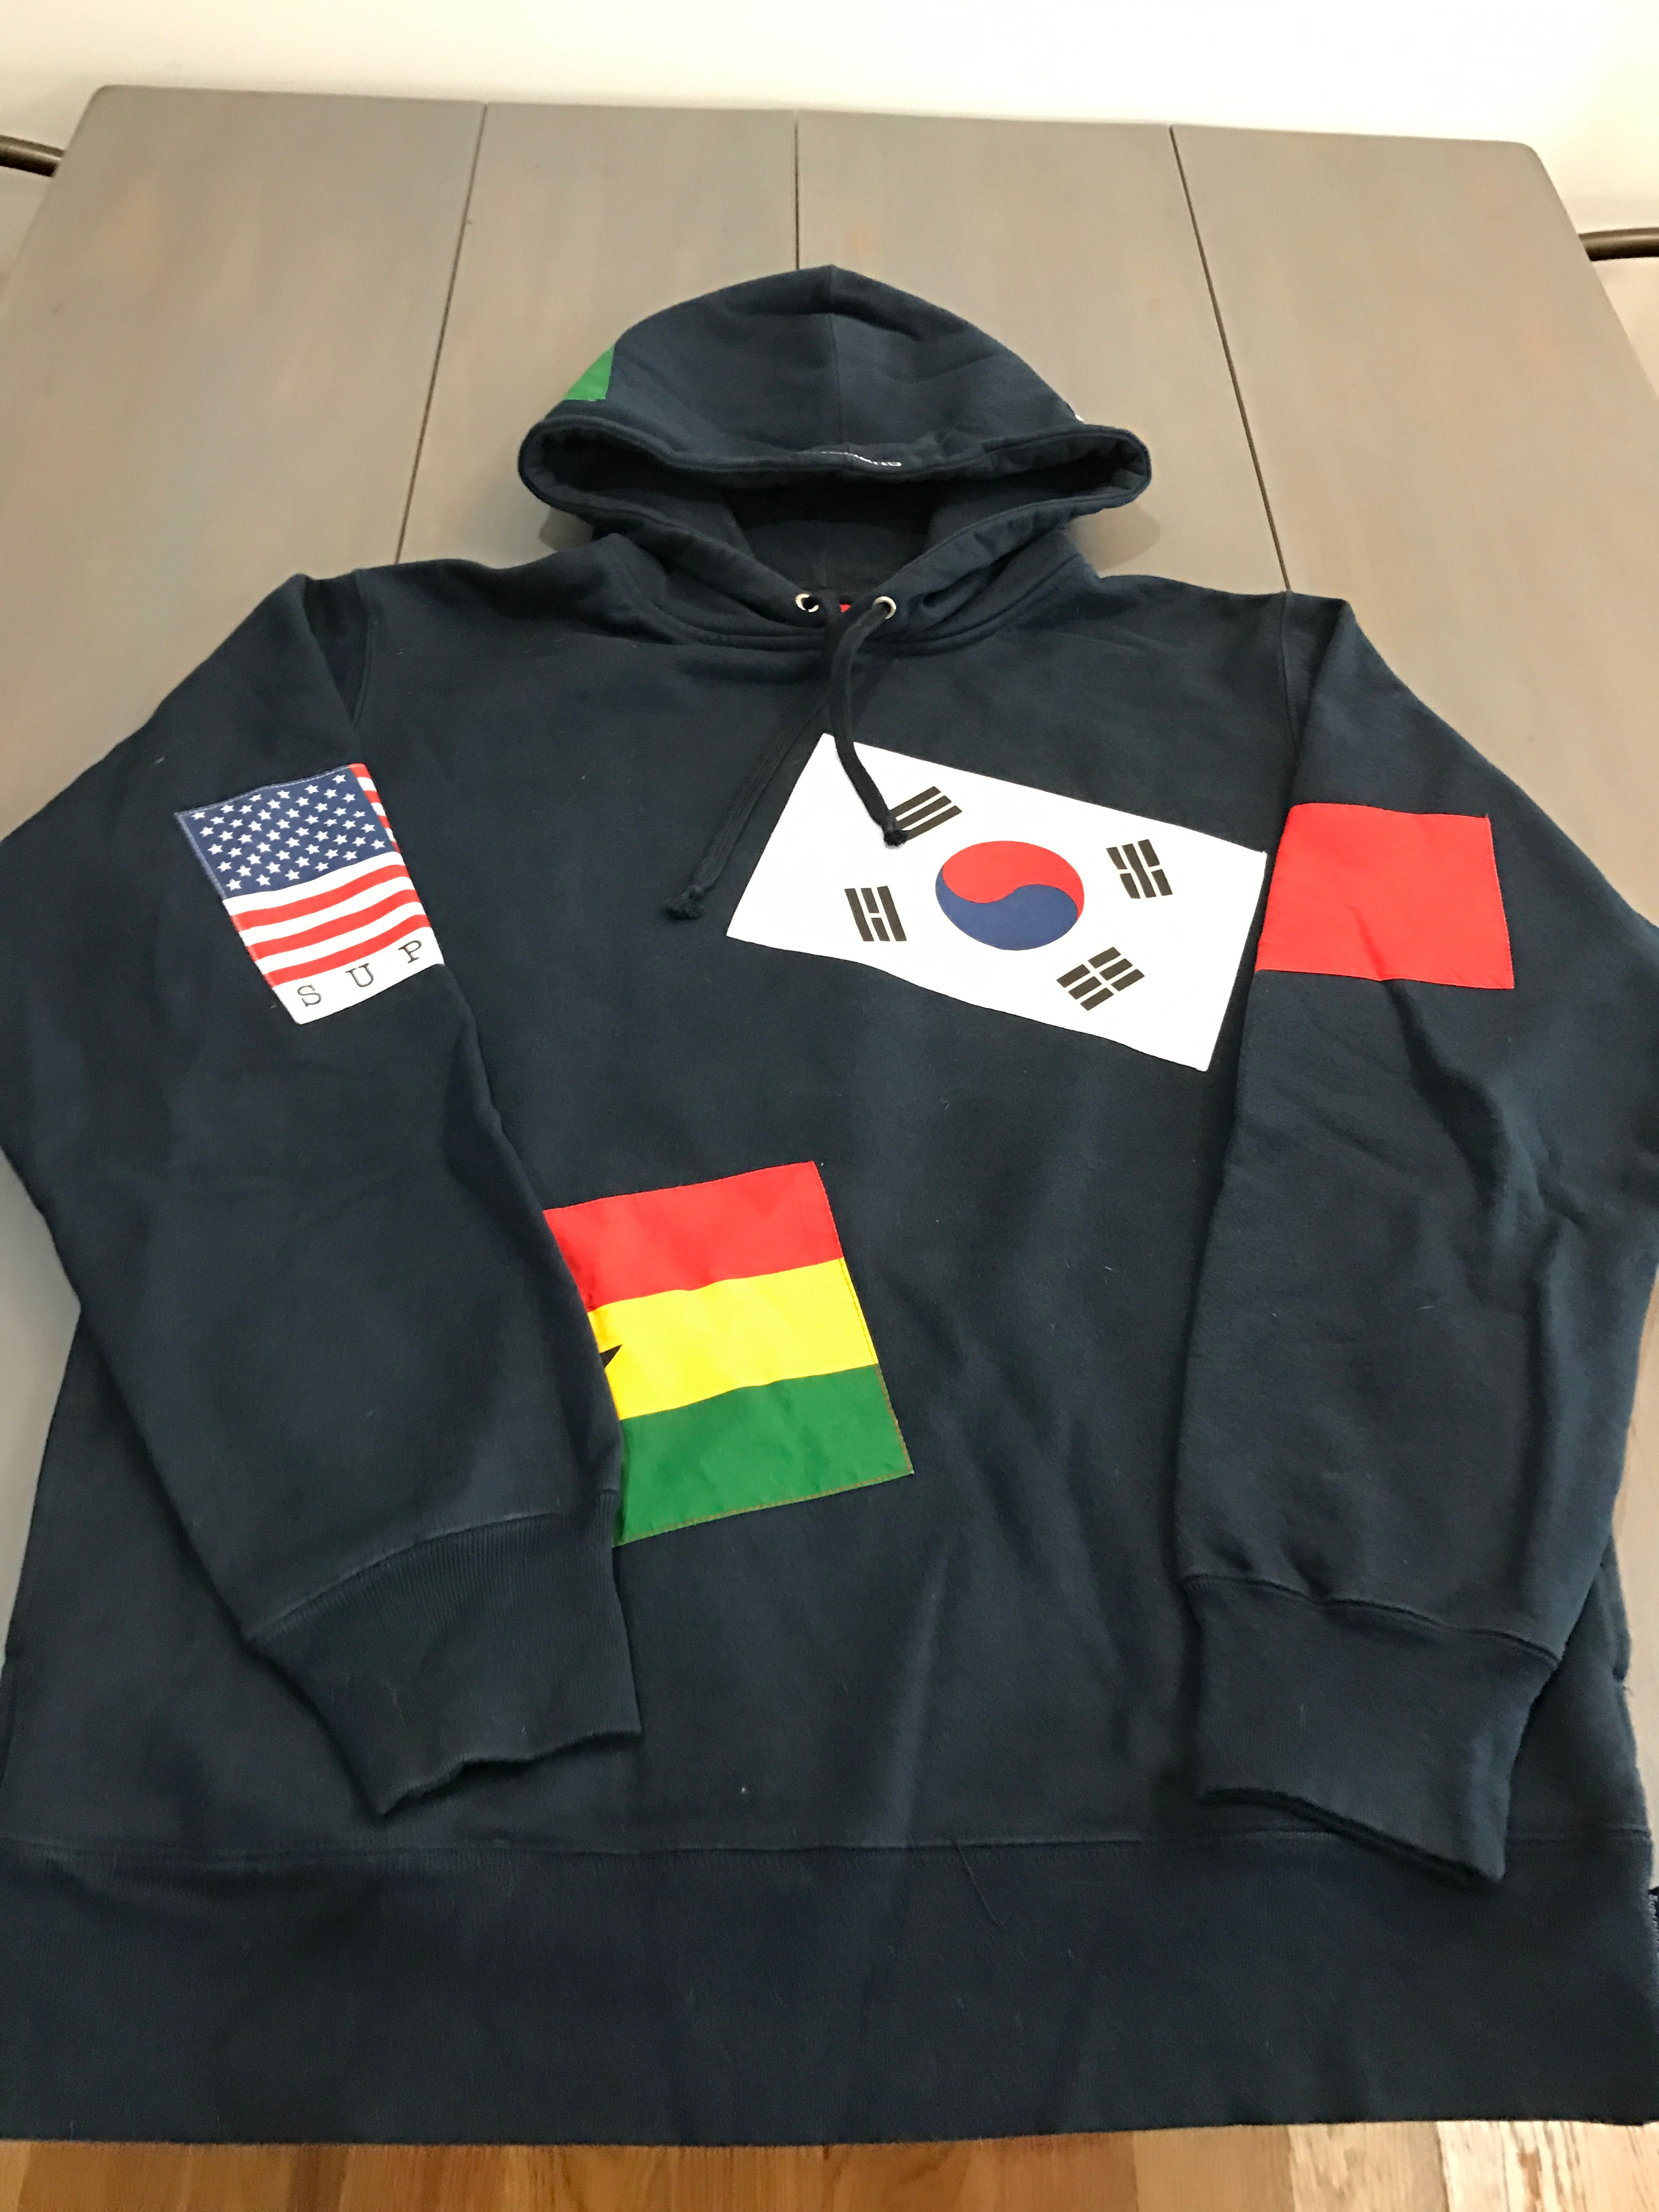 640ca4f91a2f Supreme World Flag Hoodie Size l - Sweatshirts   Hoodies for Sale - Grailed